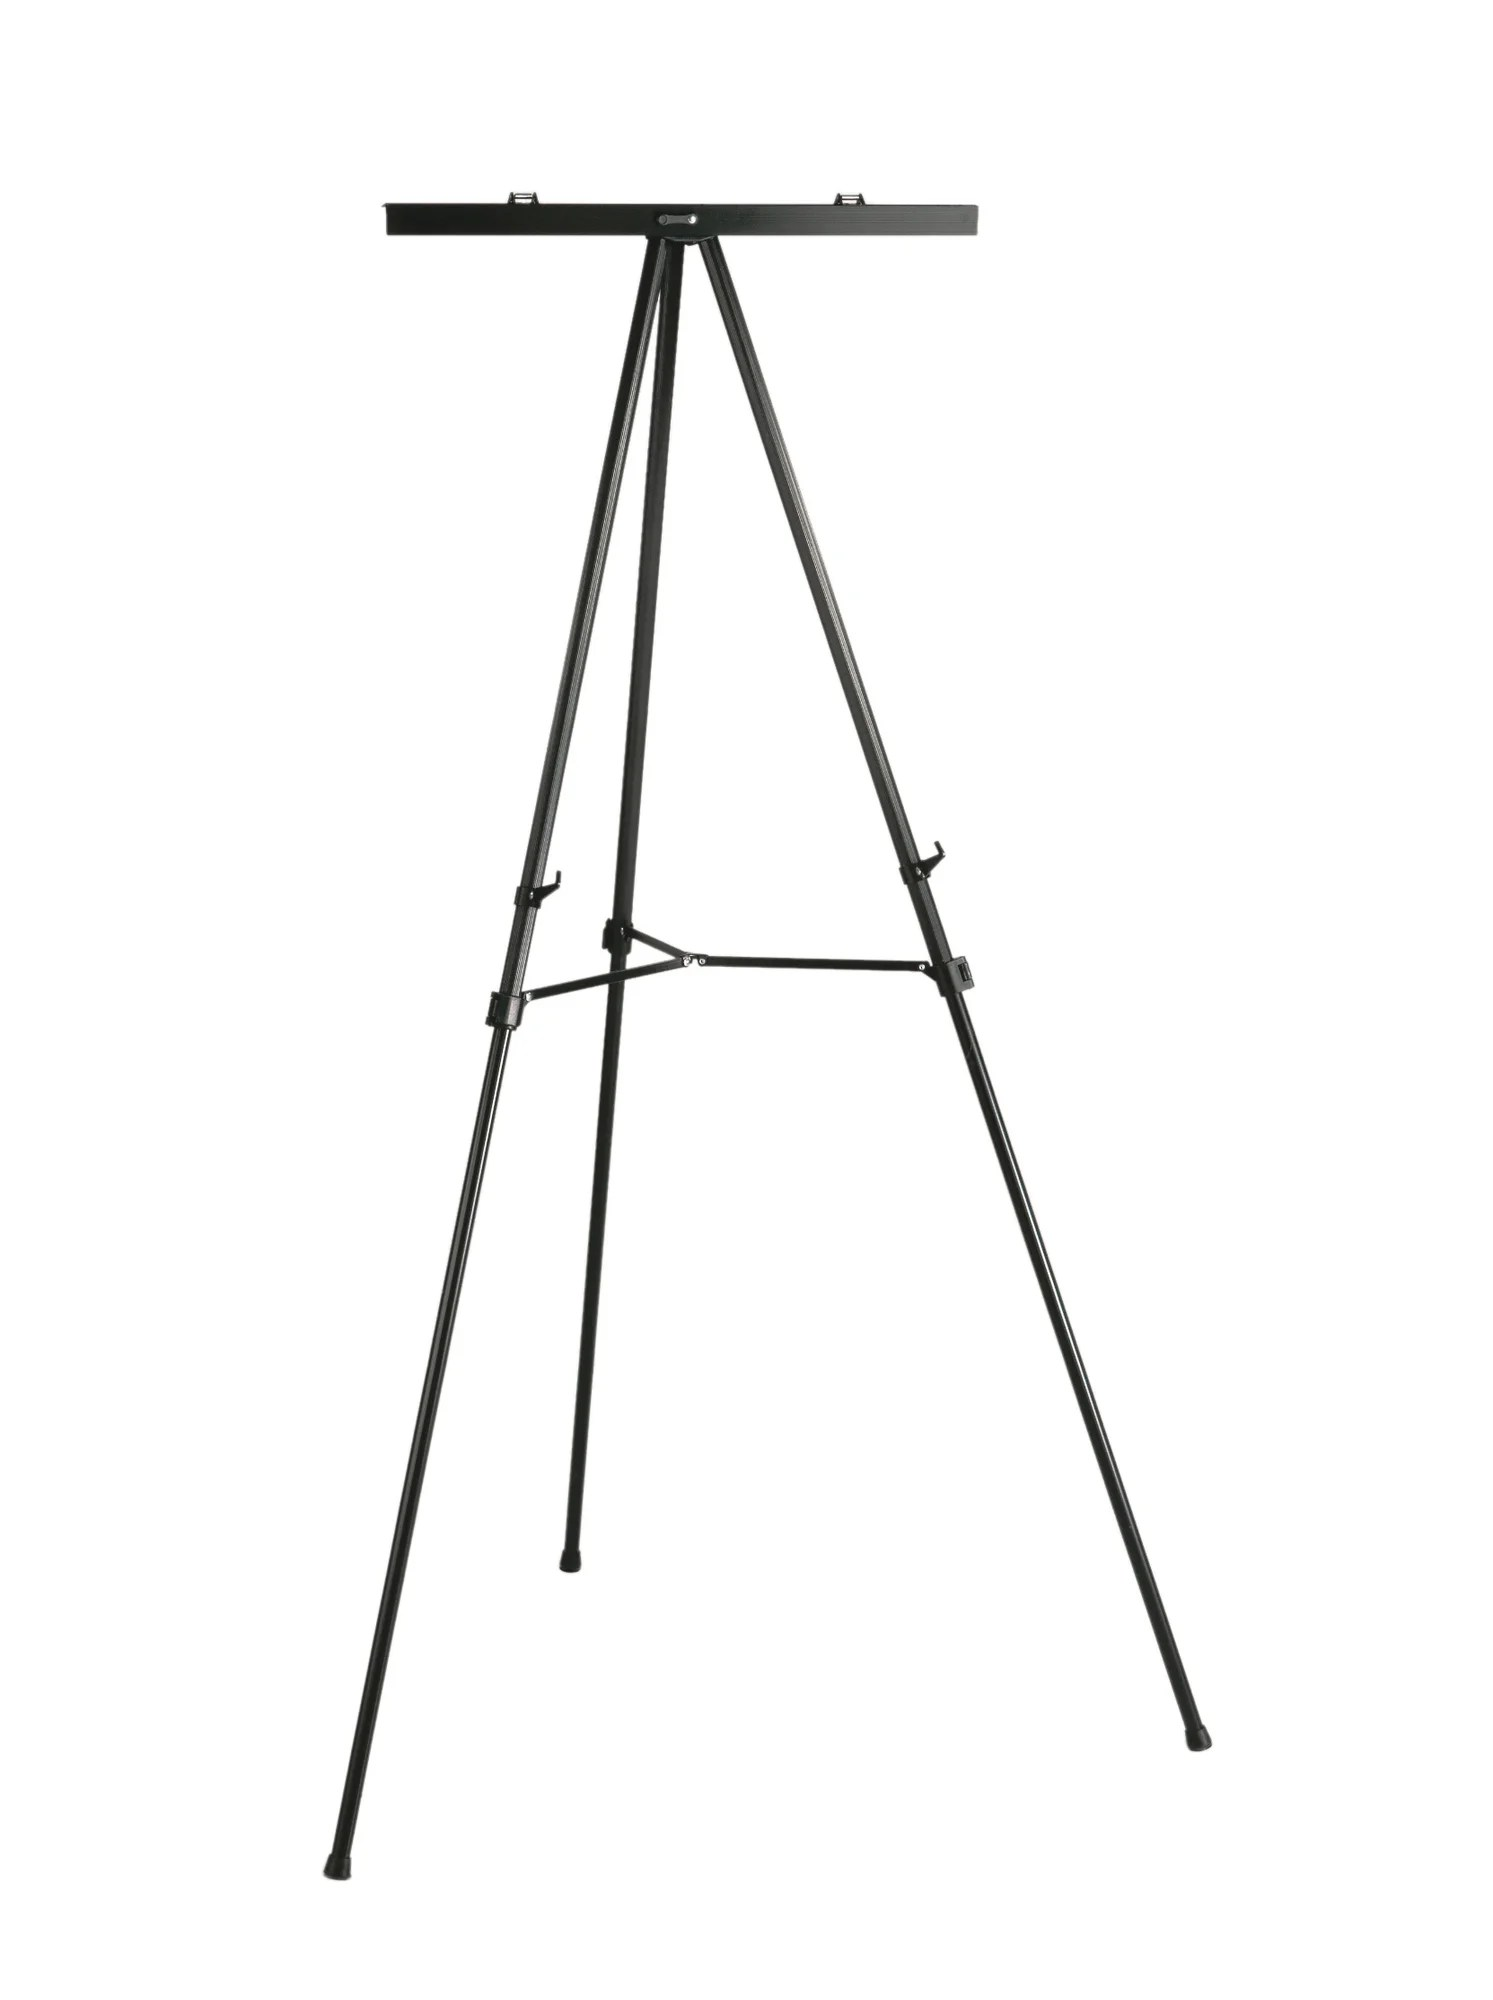 Studio Designs Adjustable Tripod Easel